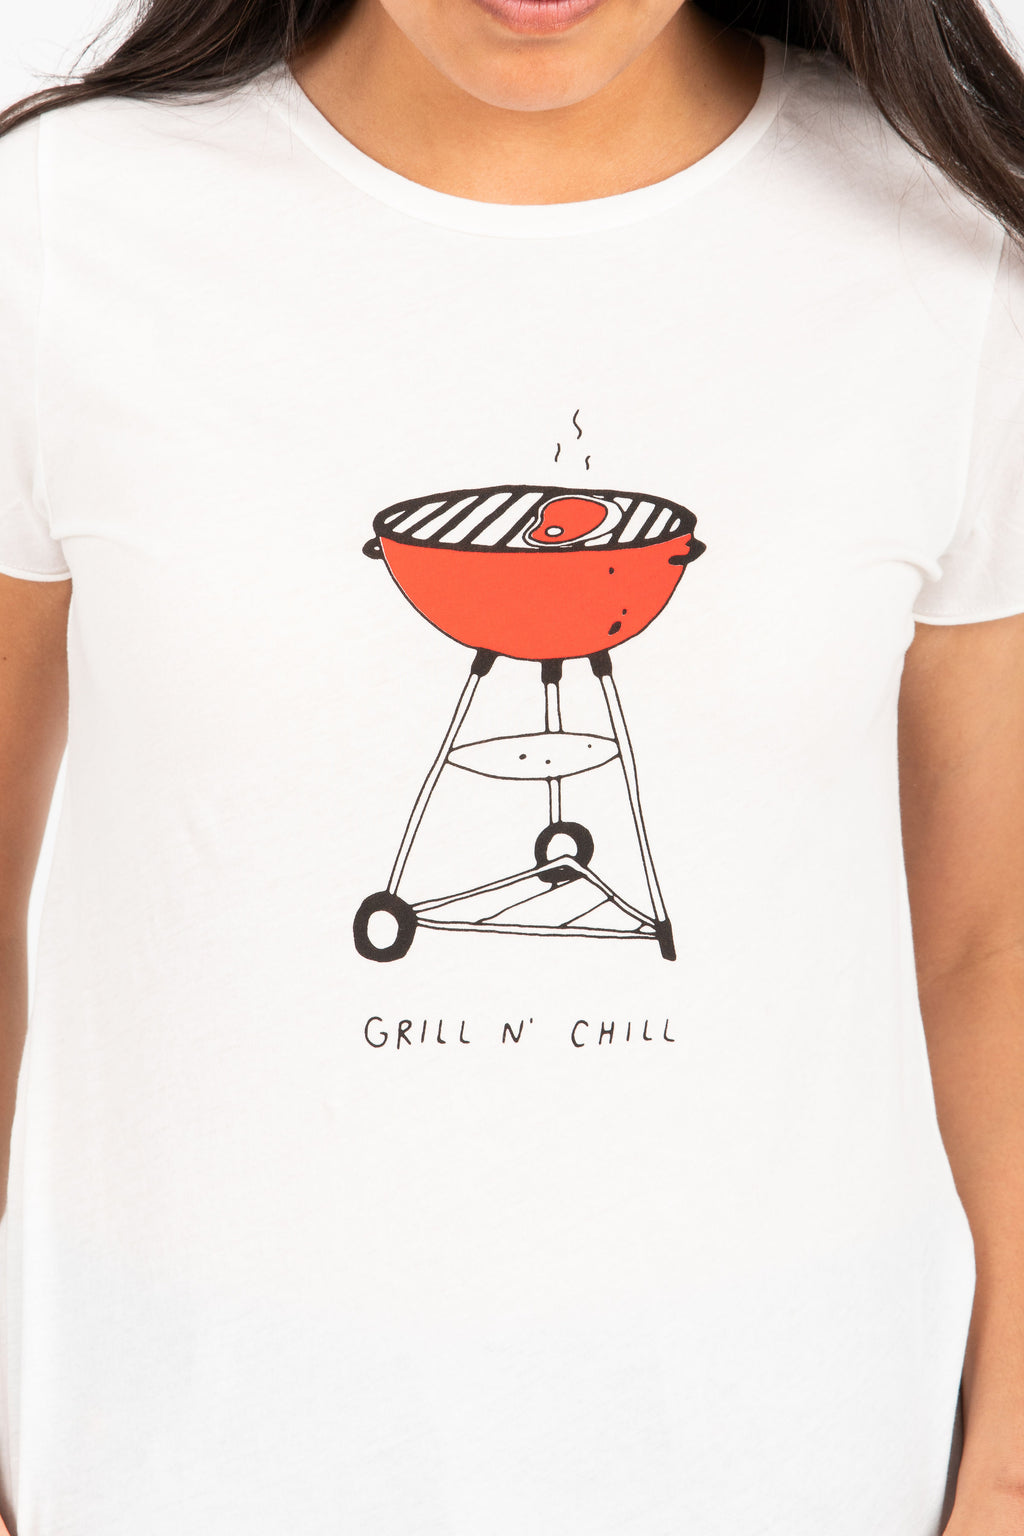 The Becker Grill N Chill Tee in Vintage White